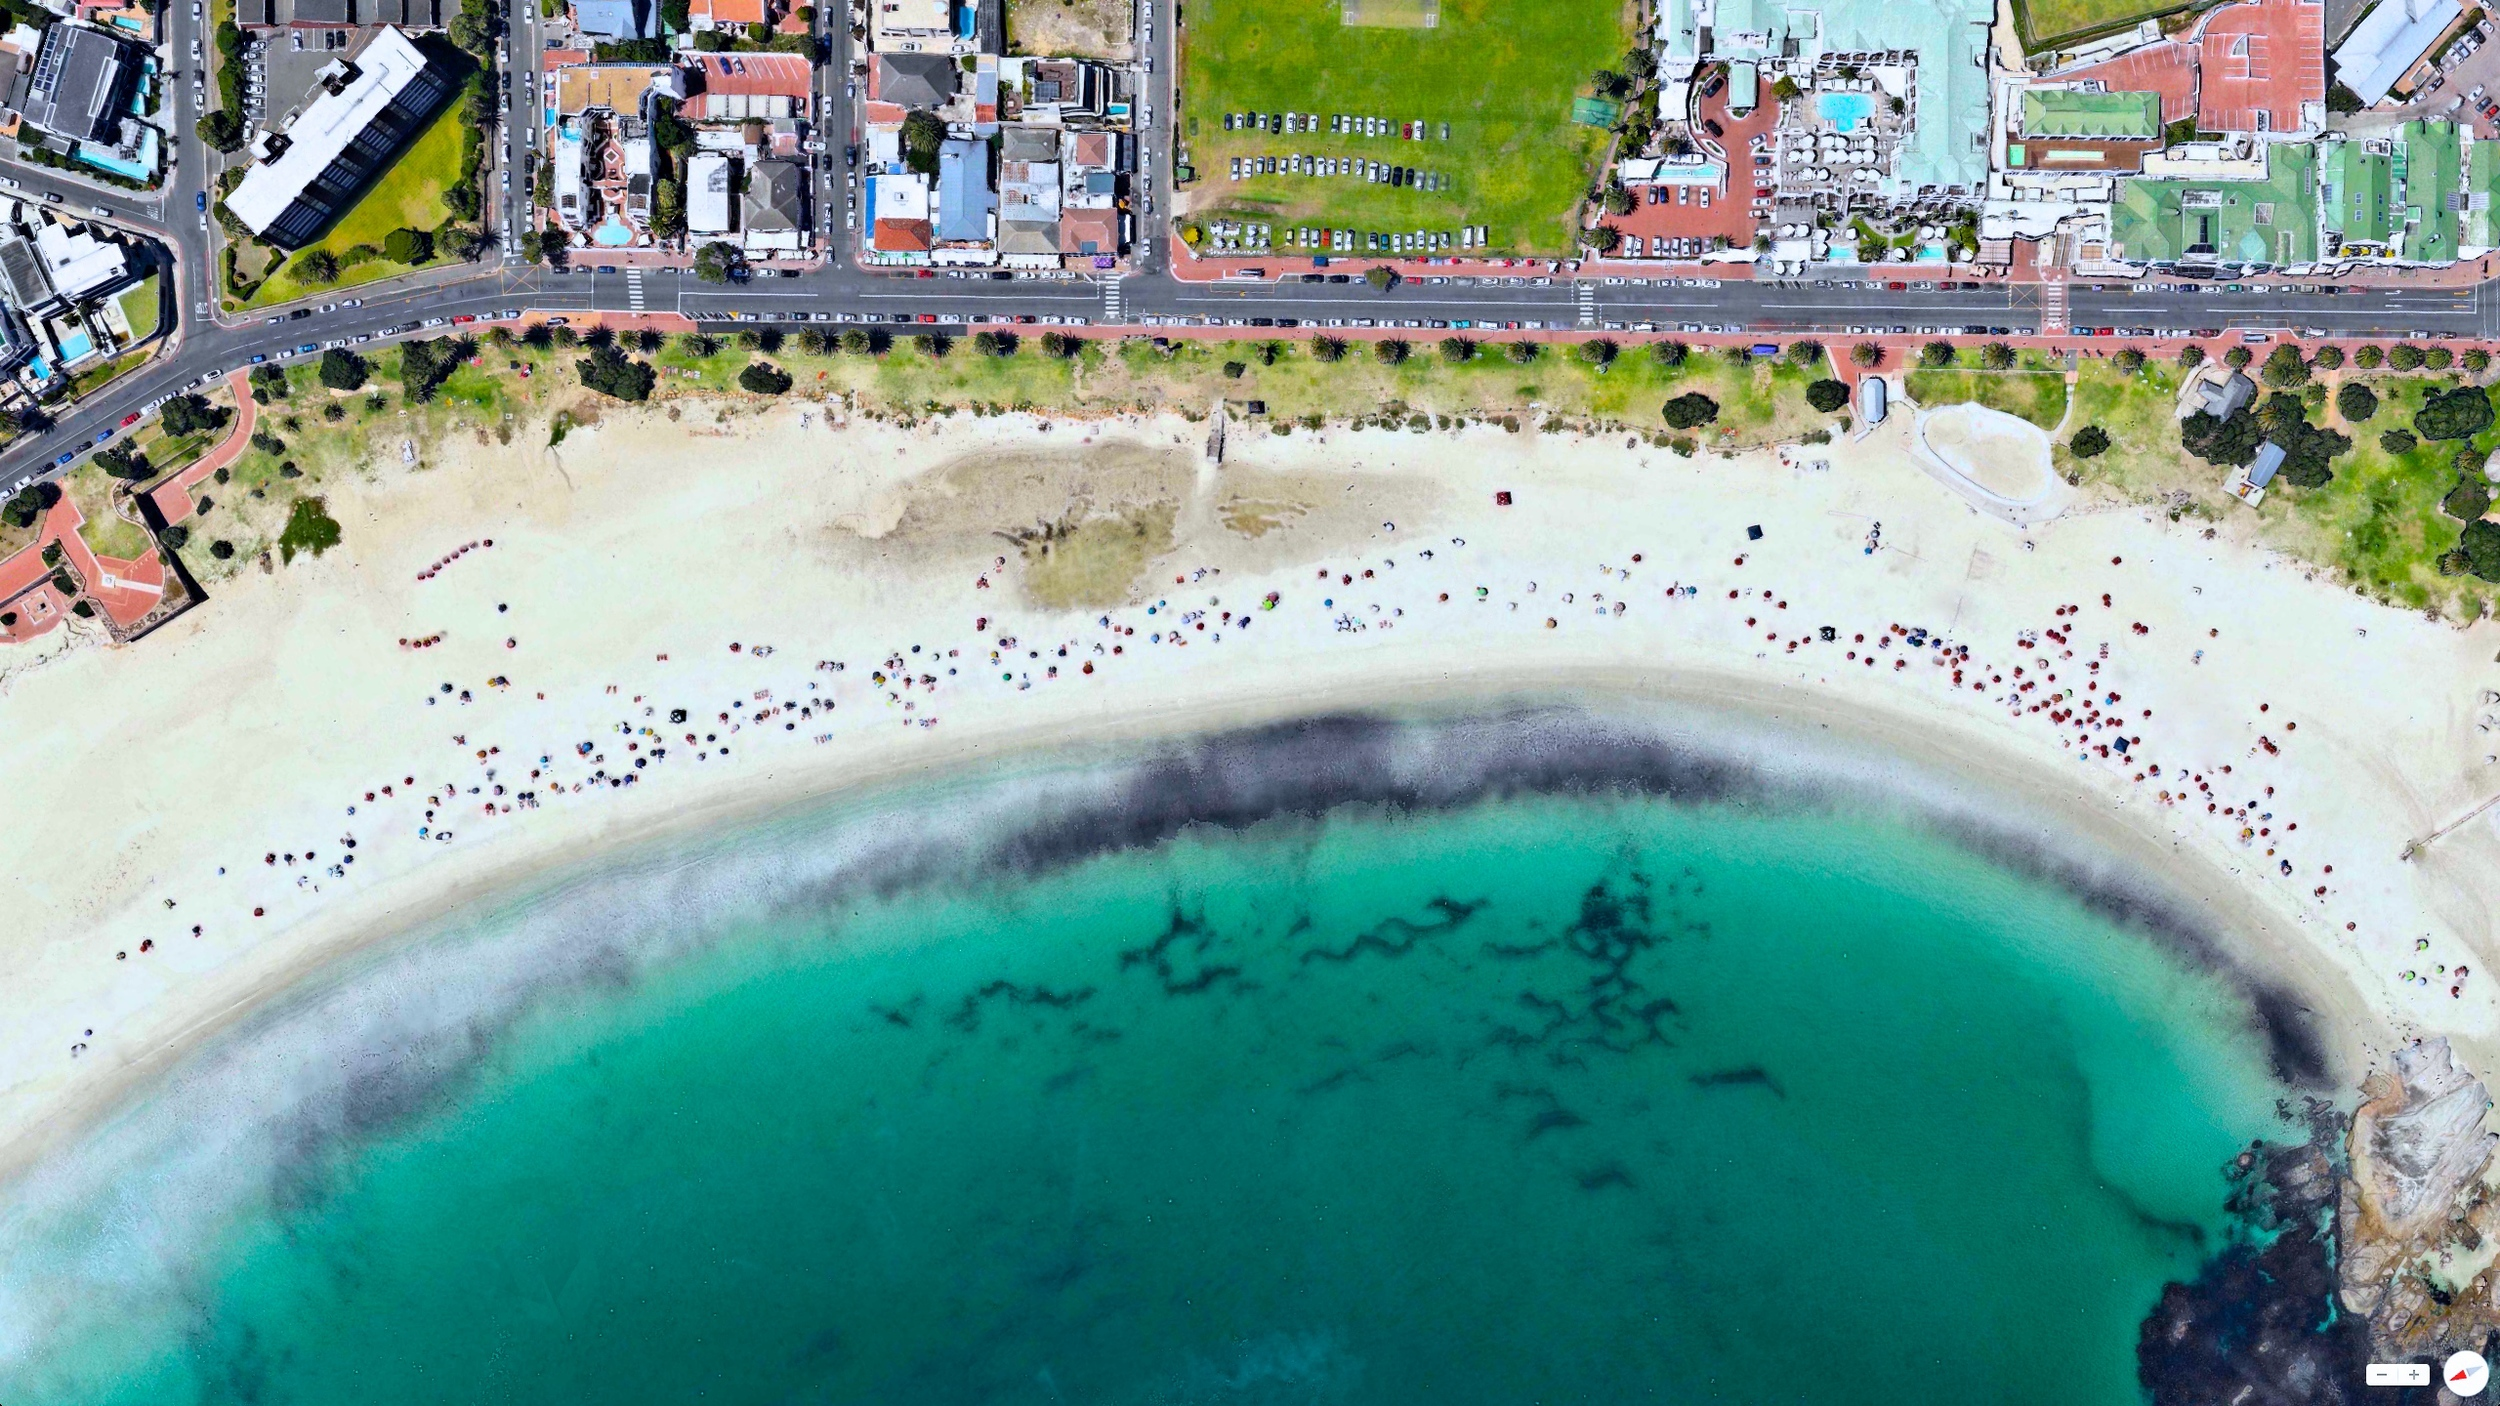 5/2/2014    Camps Bay Beach   Camps Bay, Cape Town, South Africa   33°57′00″S 18°23′00″E